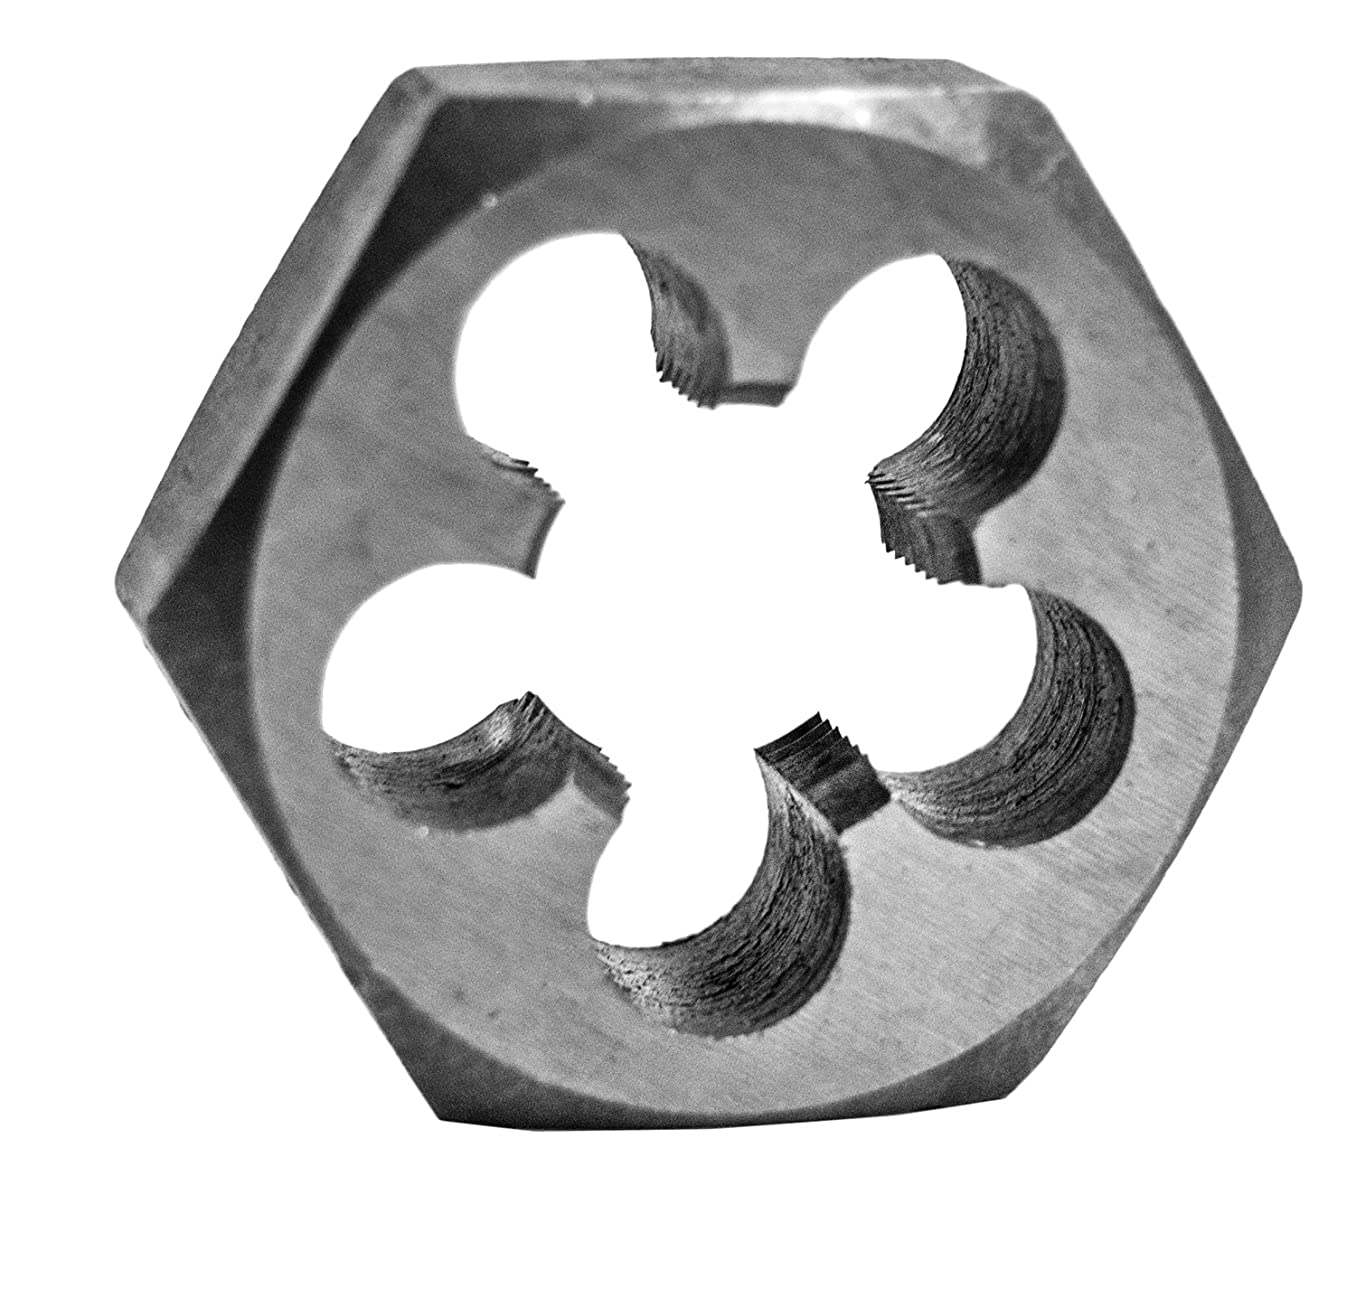 Century Drill & Tool 96210 High Carbon Steel Fractional Hexagon Die, 1/2-20 NF